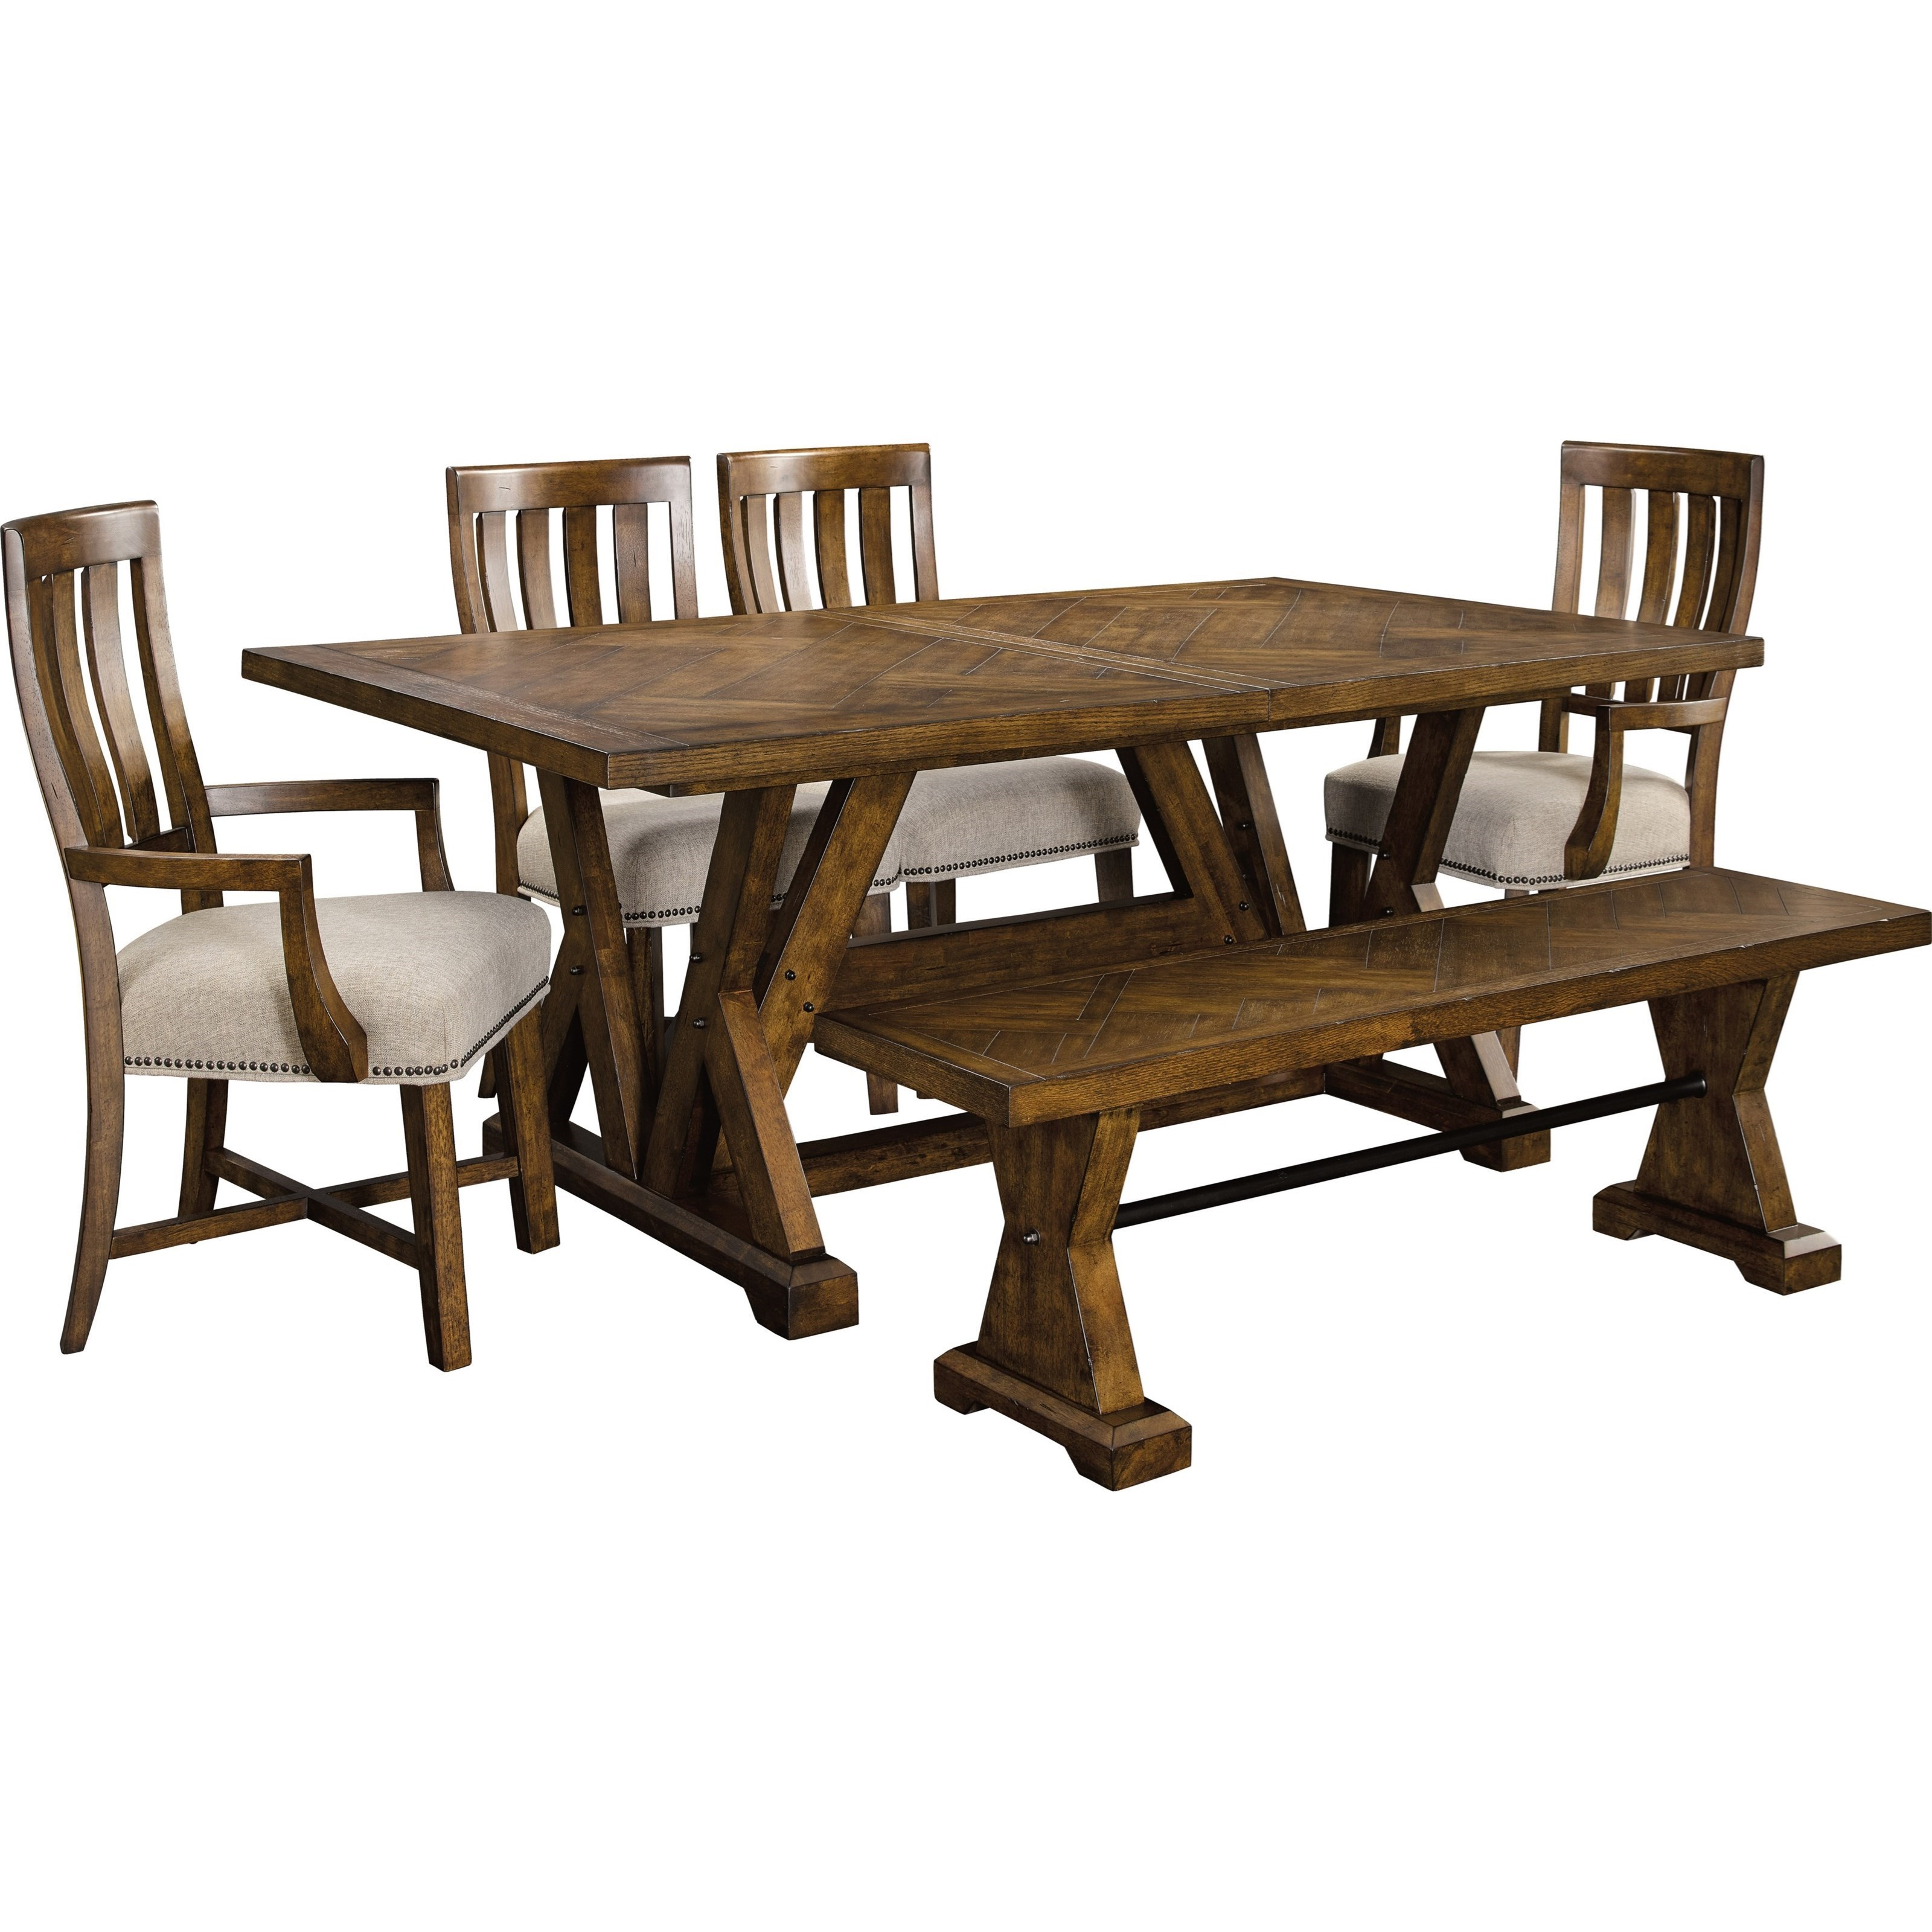 Shown With Leaf; Broyhill Furniture PieceworksRectangular Dining Table